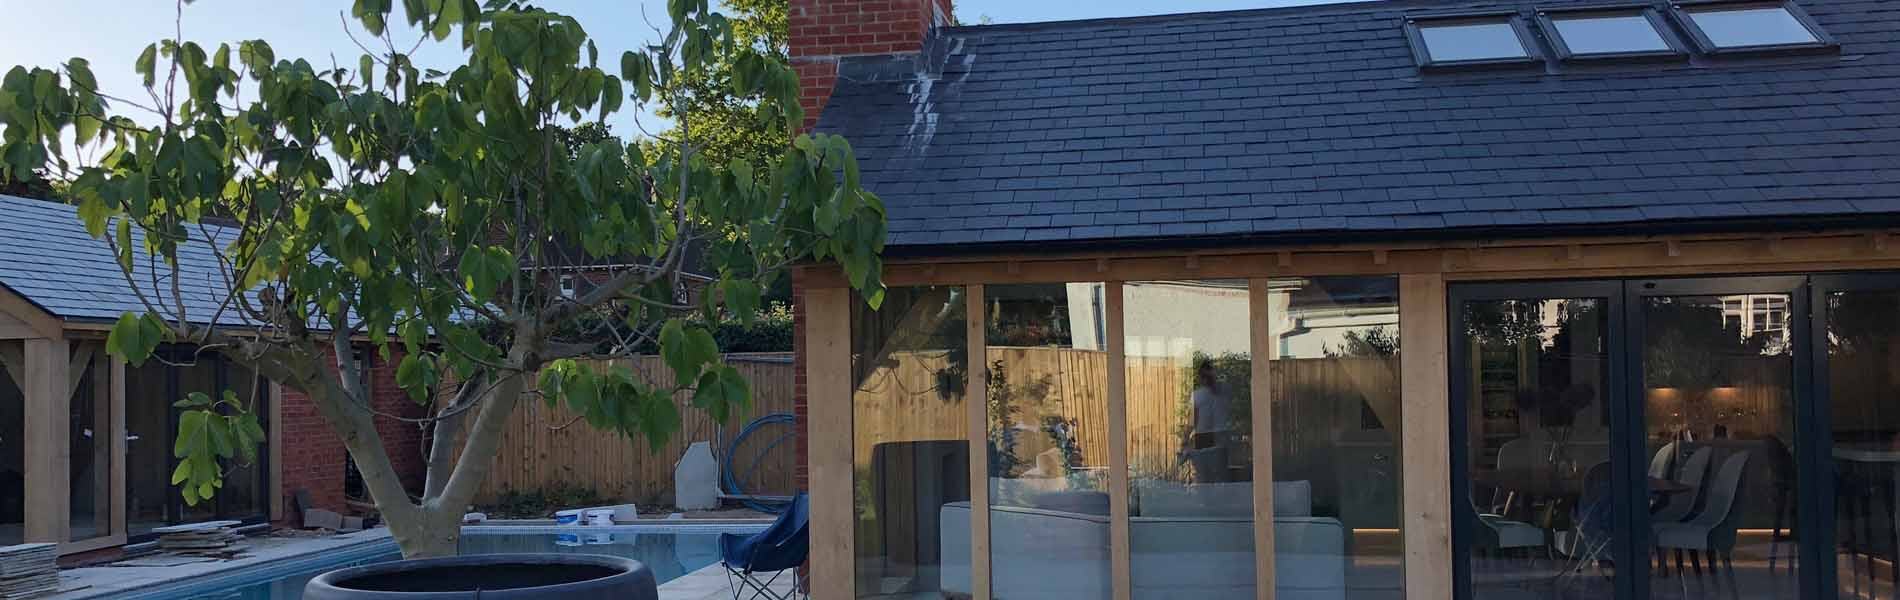 Bath Building & Installation Ltd We are a family run business providing building work for customers across Bath, Bristol and surrounding areas for the last 10 years.